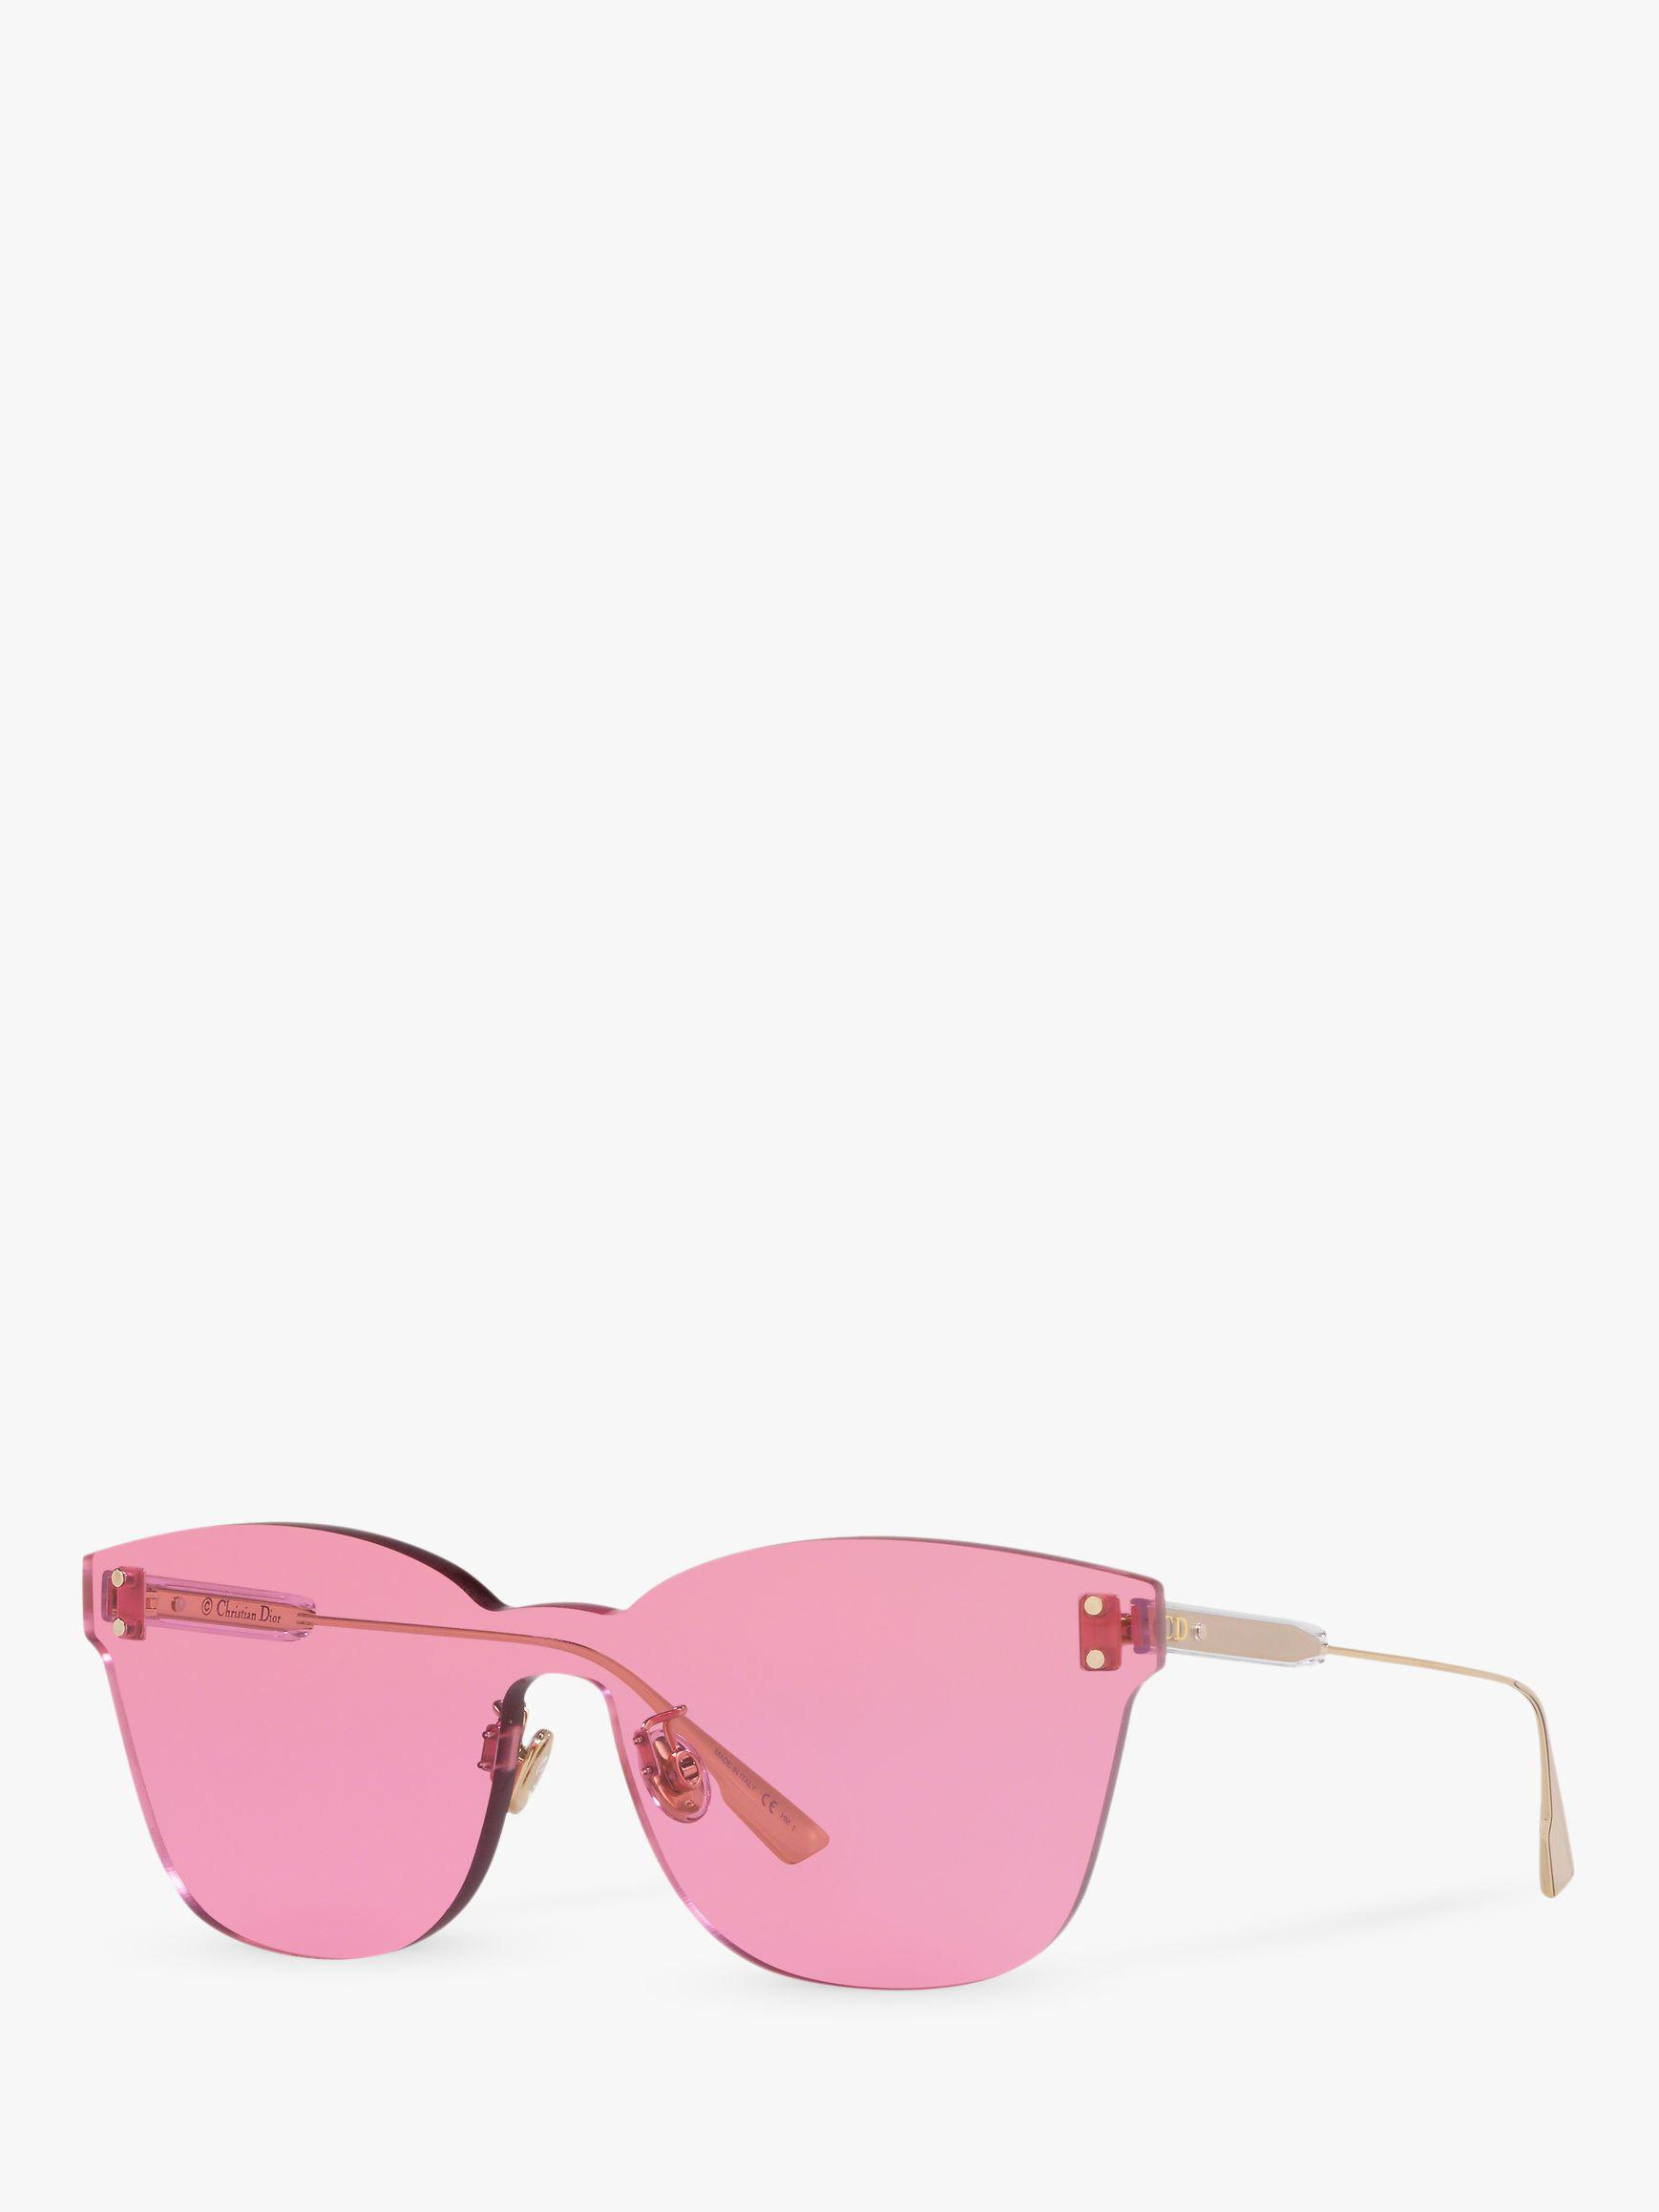 ced3b9df9a08 Dior. Pink Colourquake2 Women's Square Sunglasses. £280 From John Lewis and  Partners